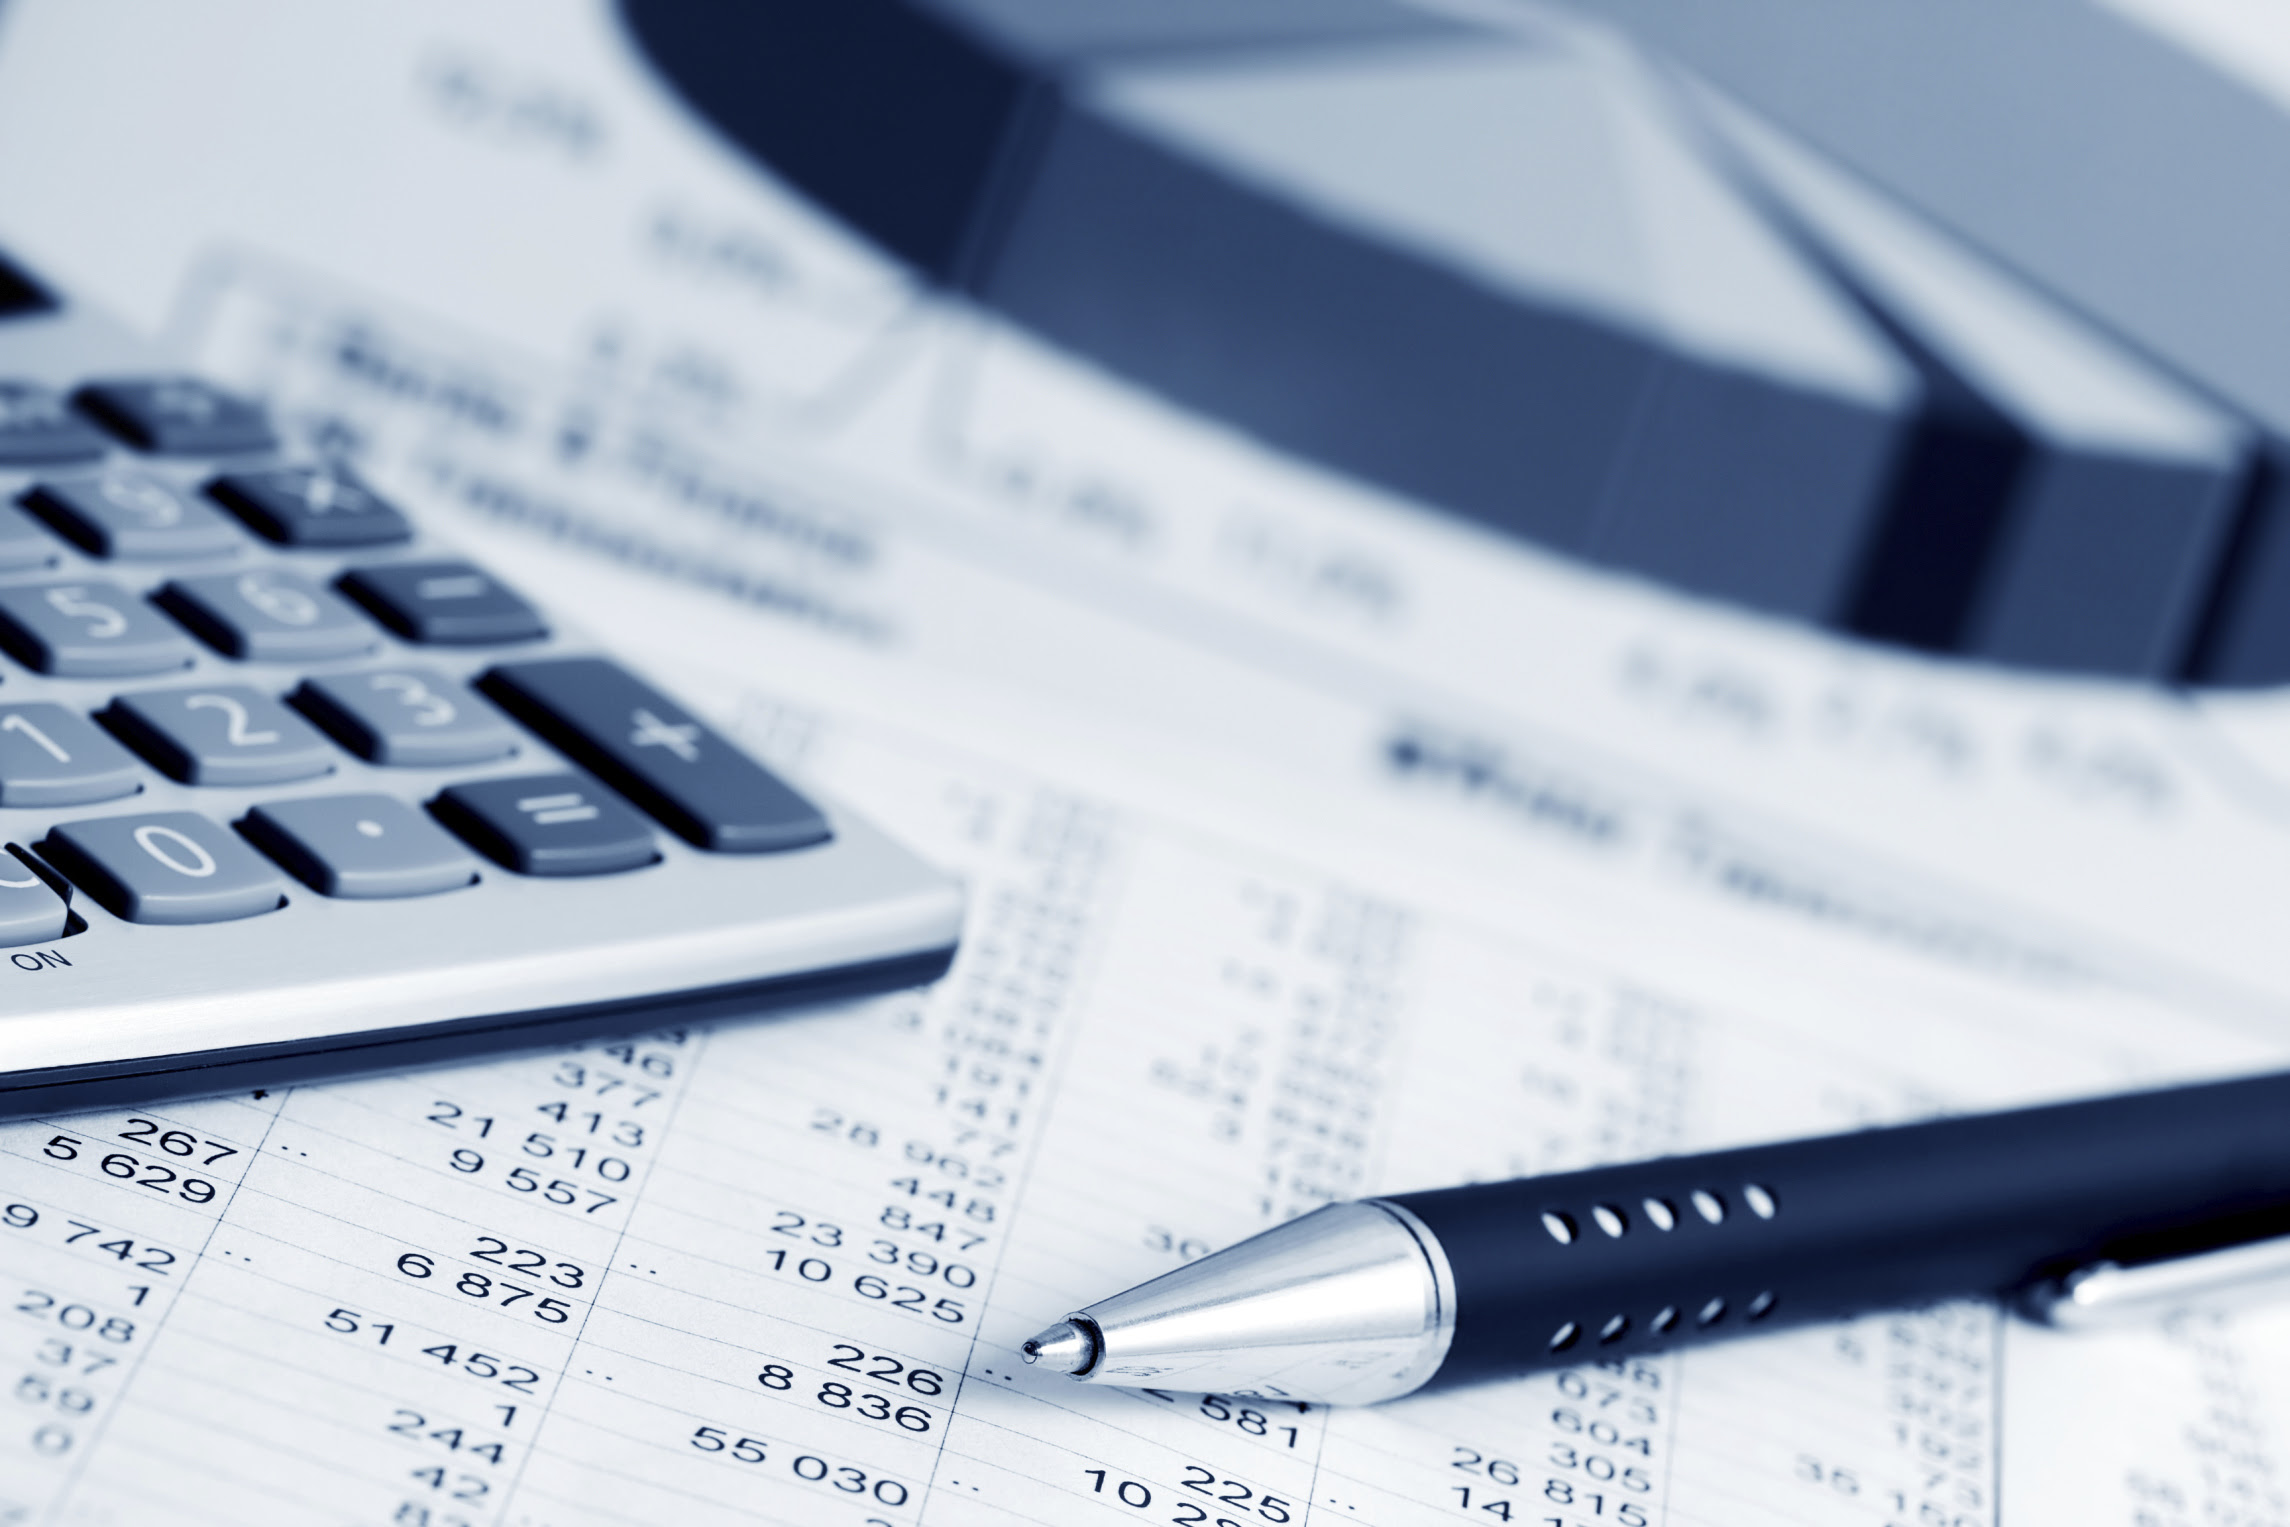 Graduate Accountant in an ICT Firm